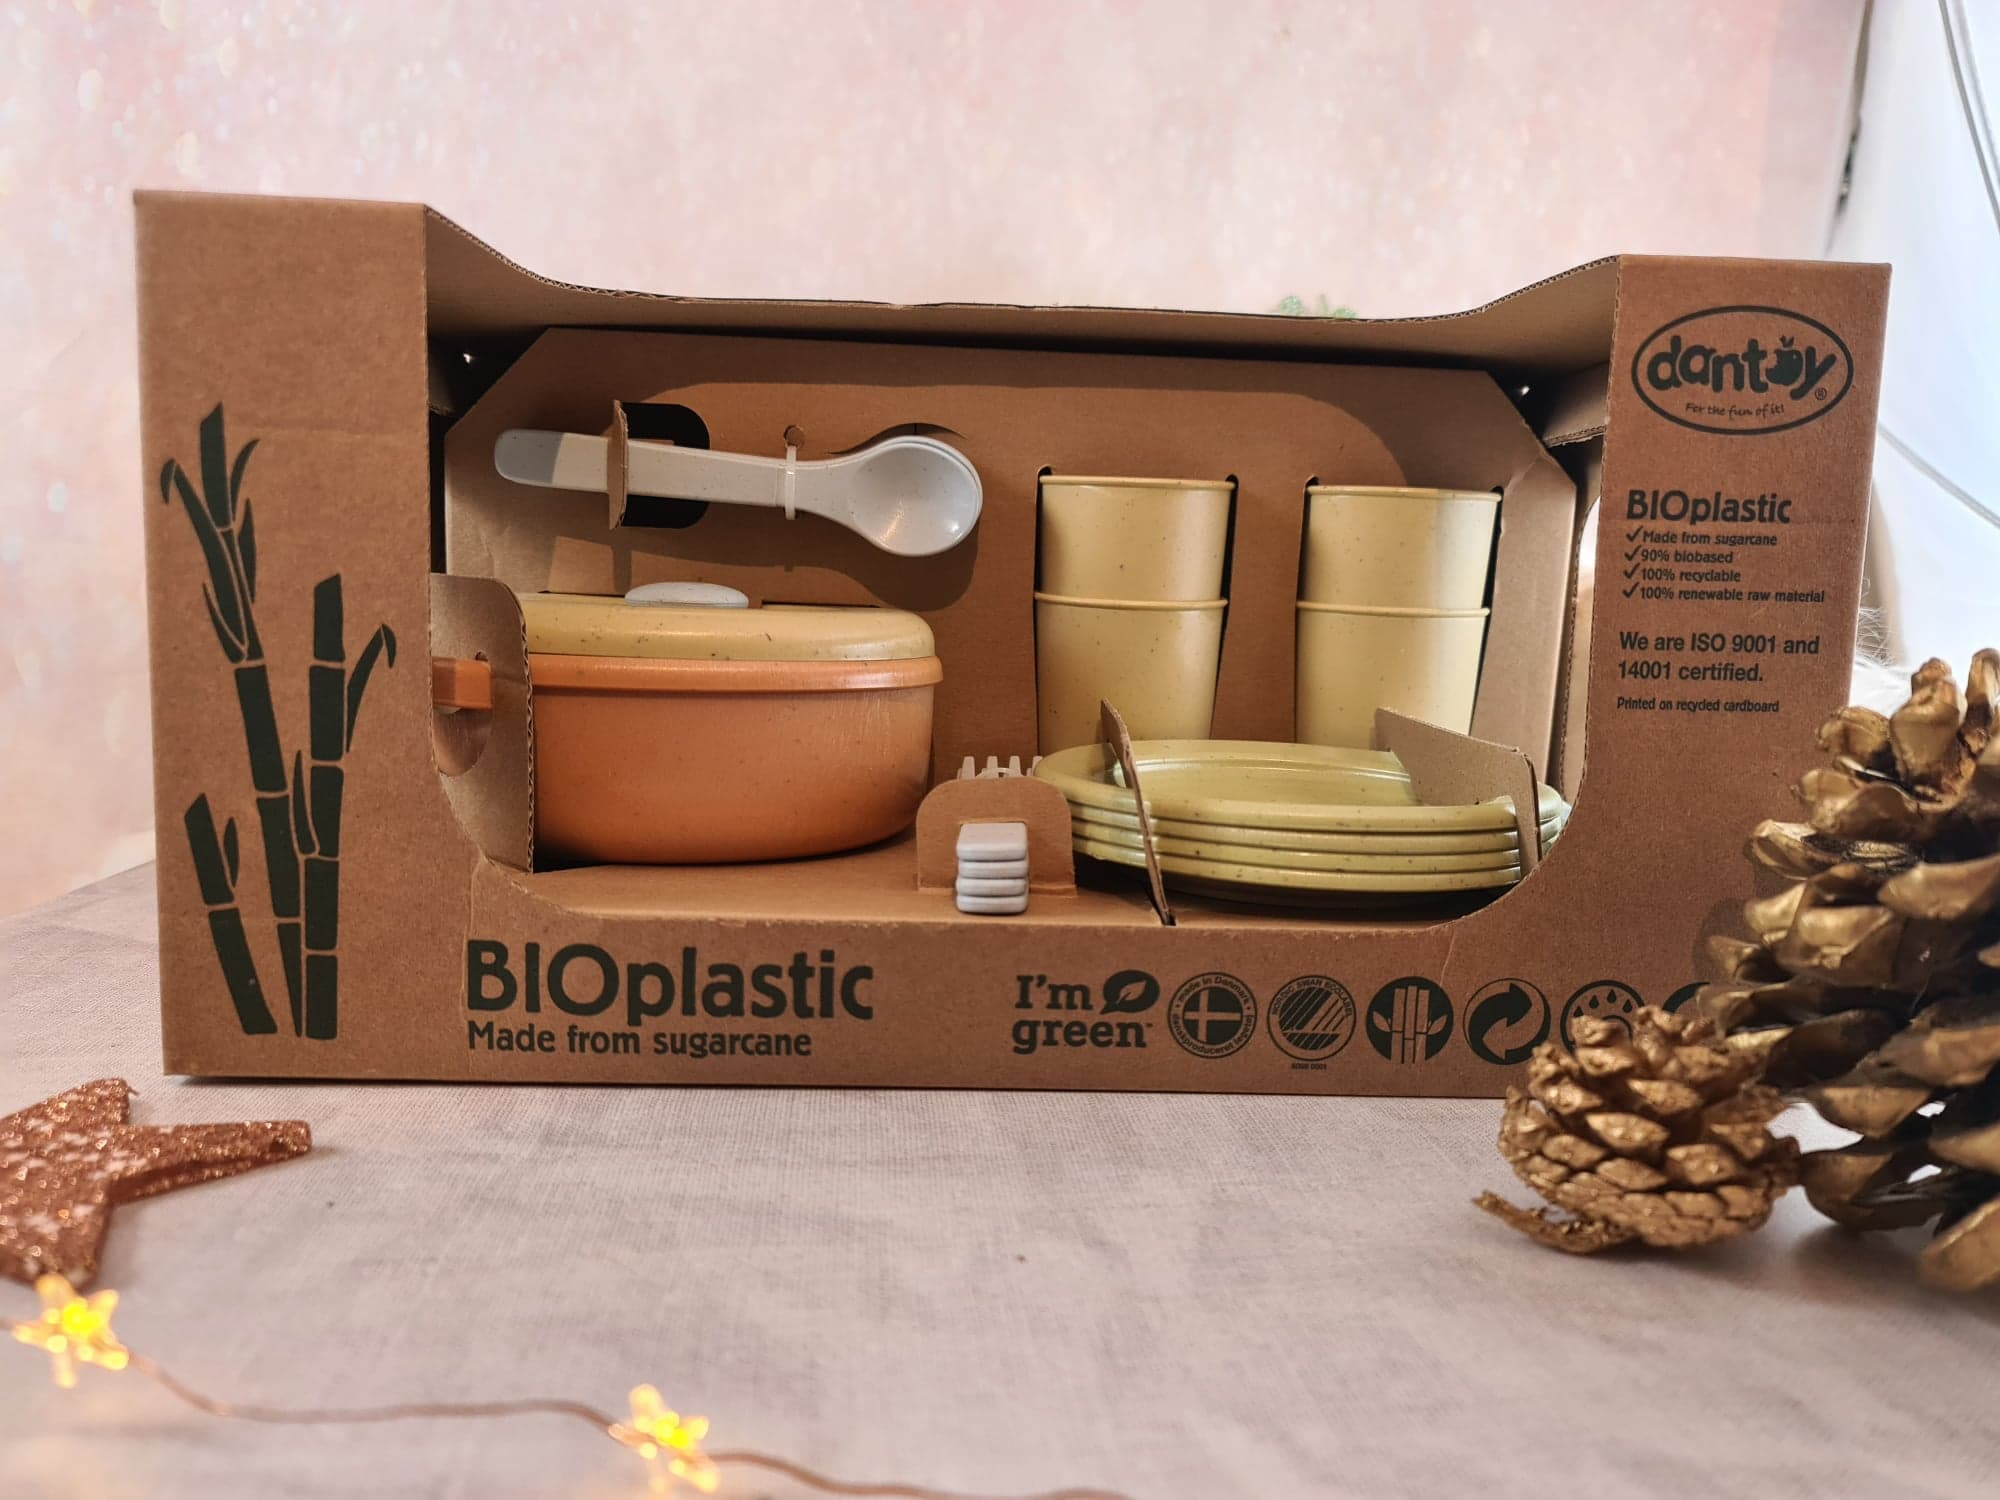 Dantoy Bio-Toy Pretend Play Dinner Set 22 Pieces, Eco-conscious Toys made from Sugarcane